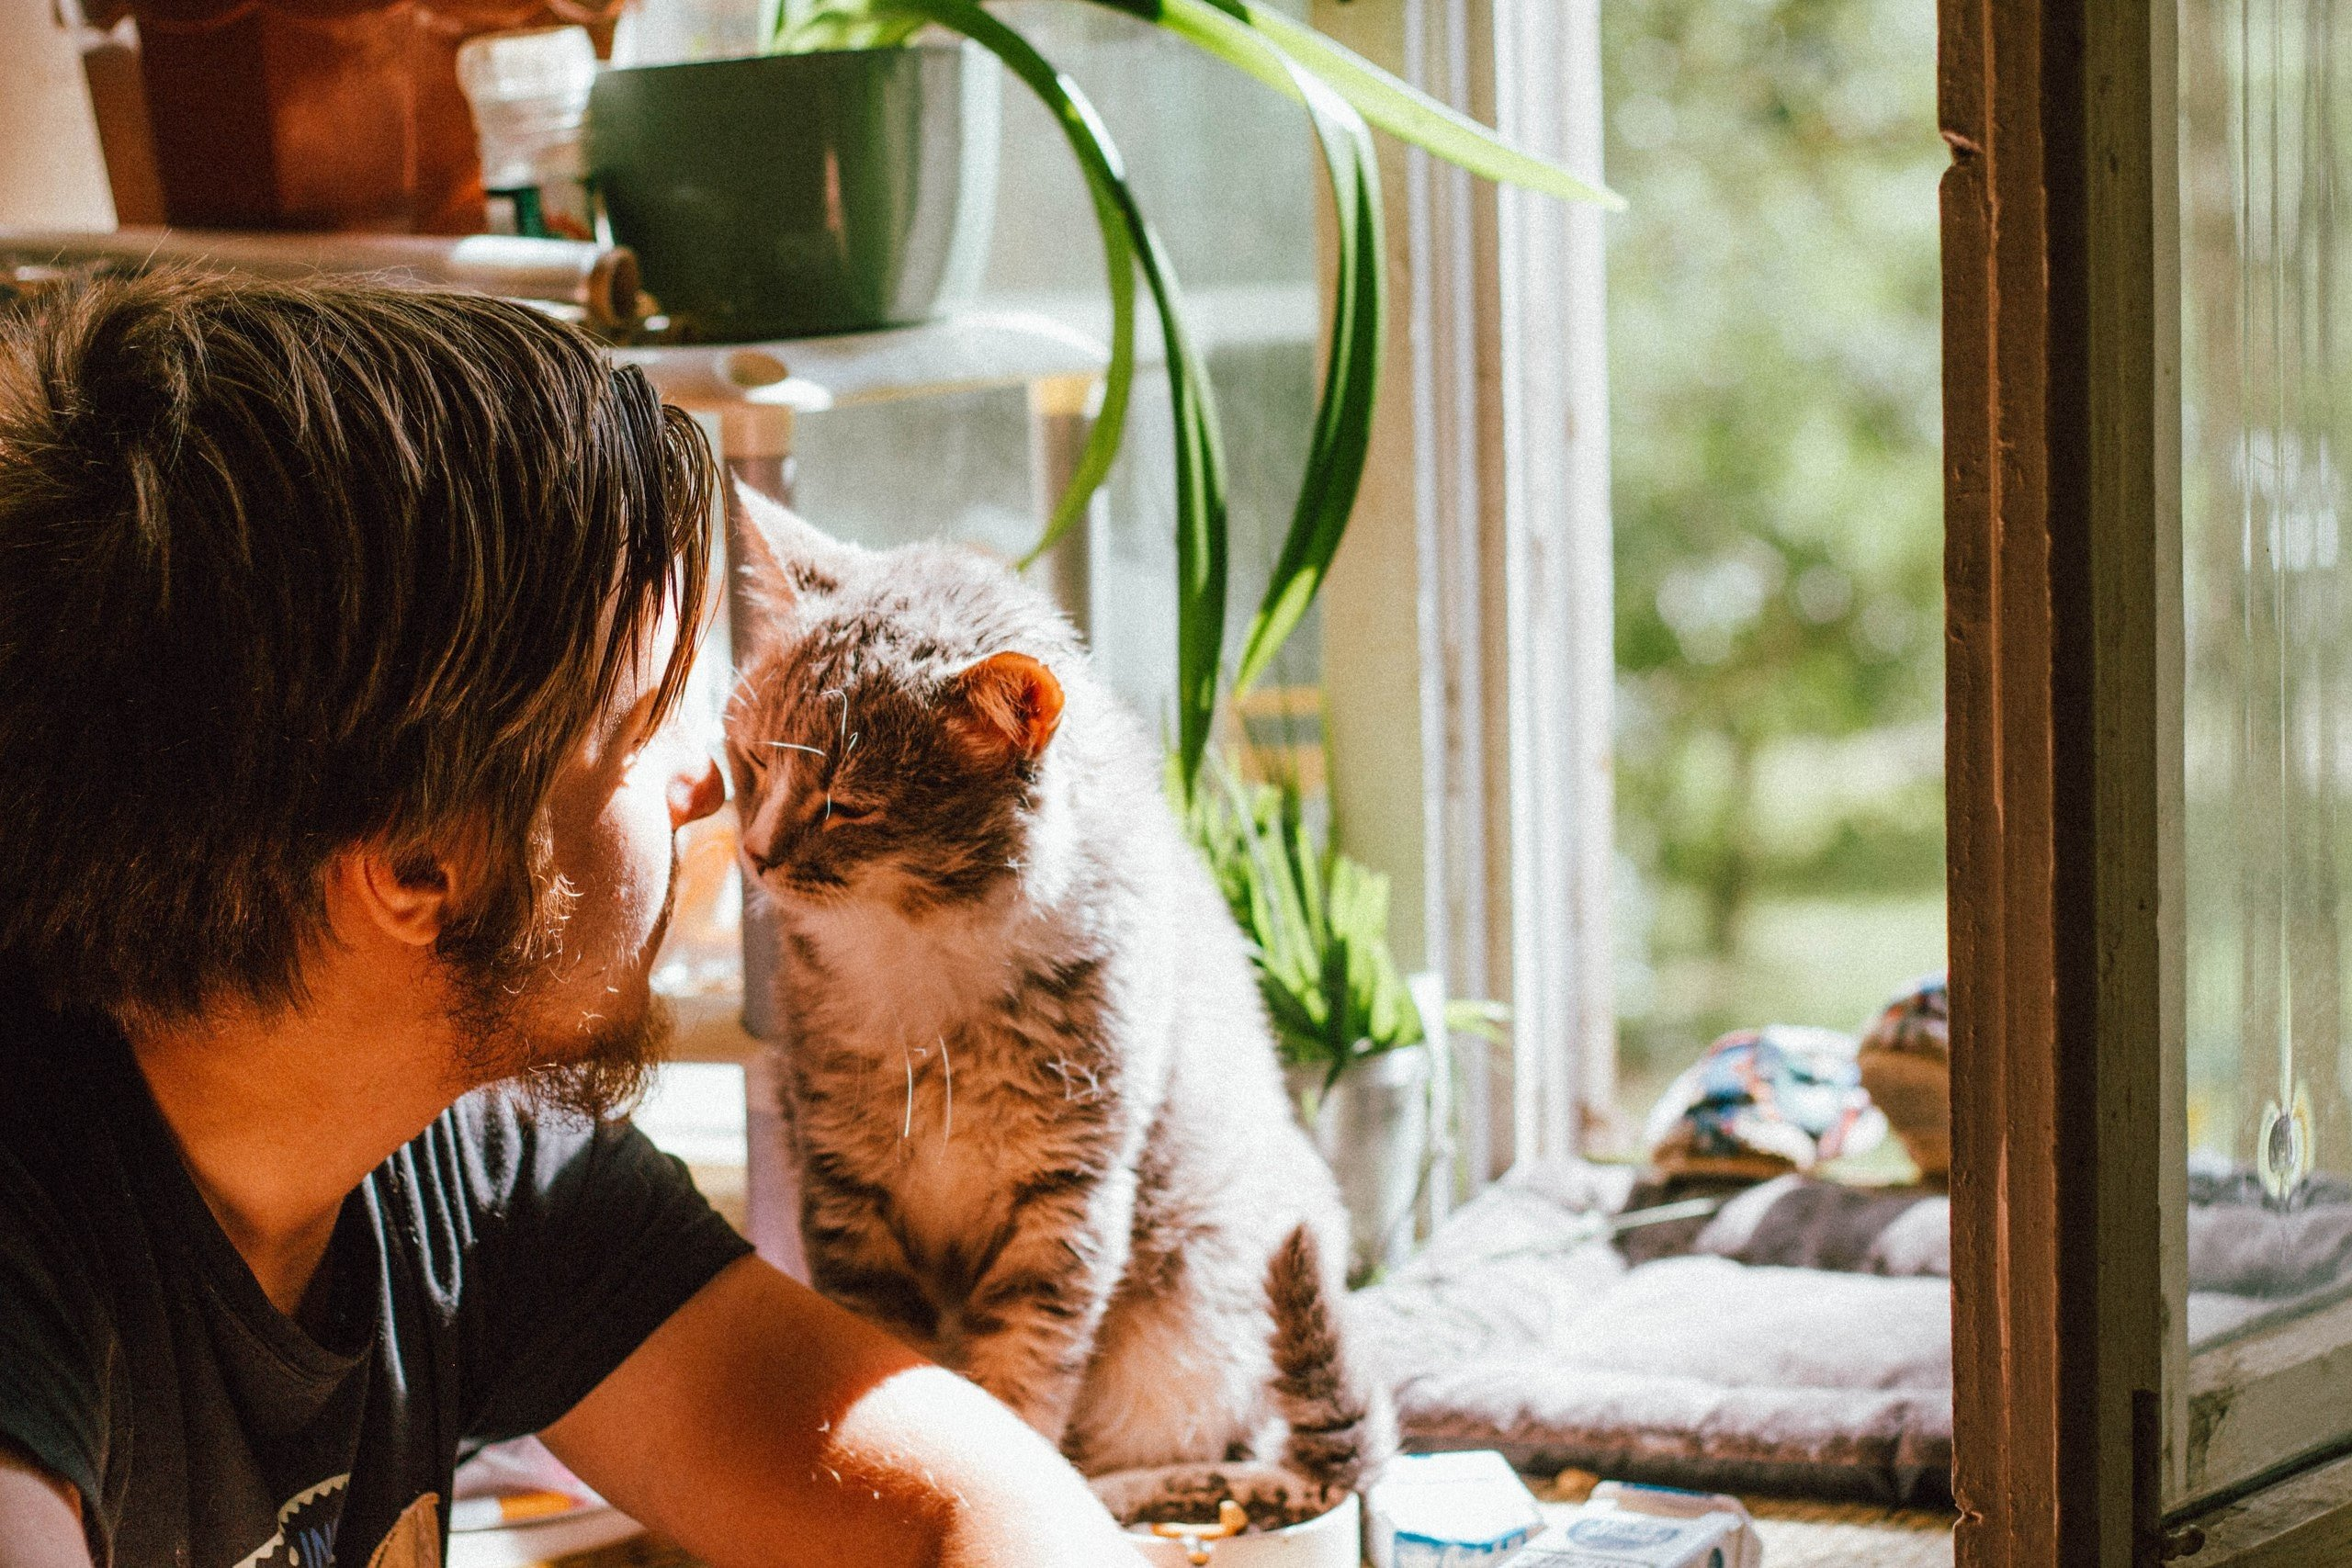 A cat brushes up against its male owner's nose | Photo: Pexels/Yuliya kota